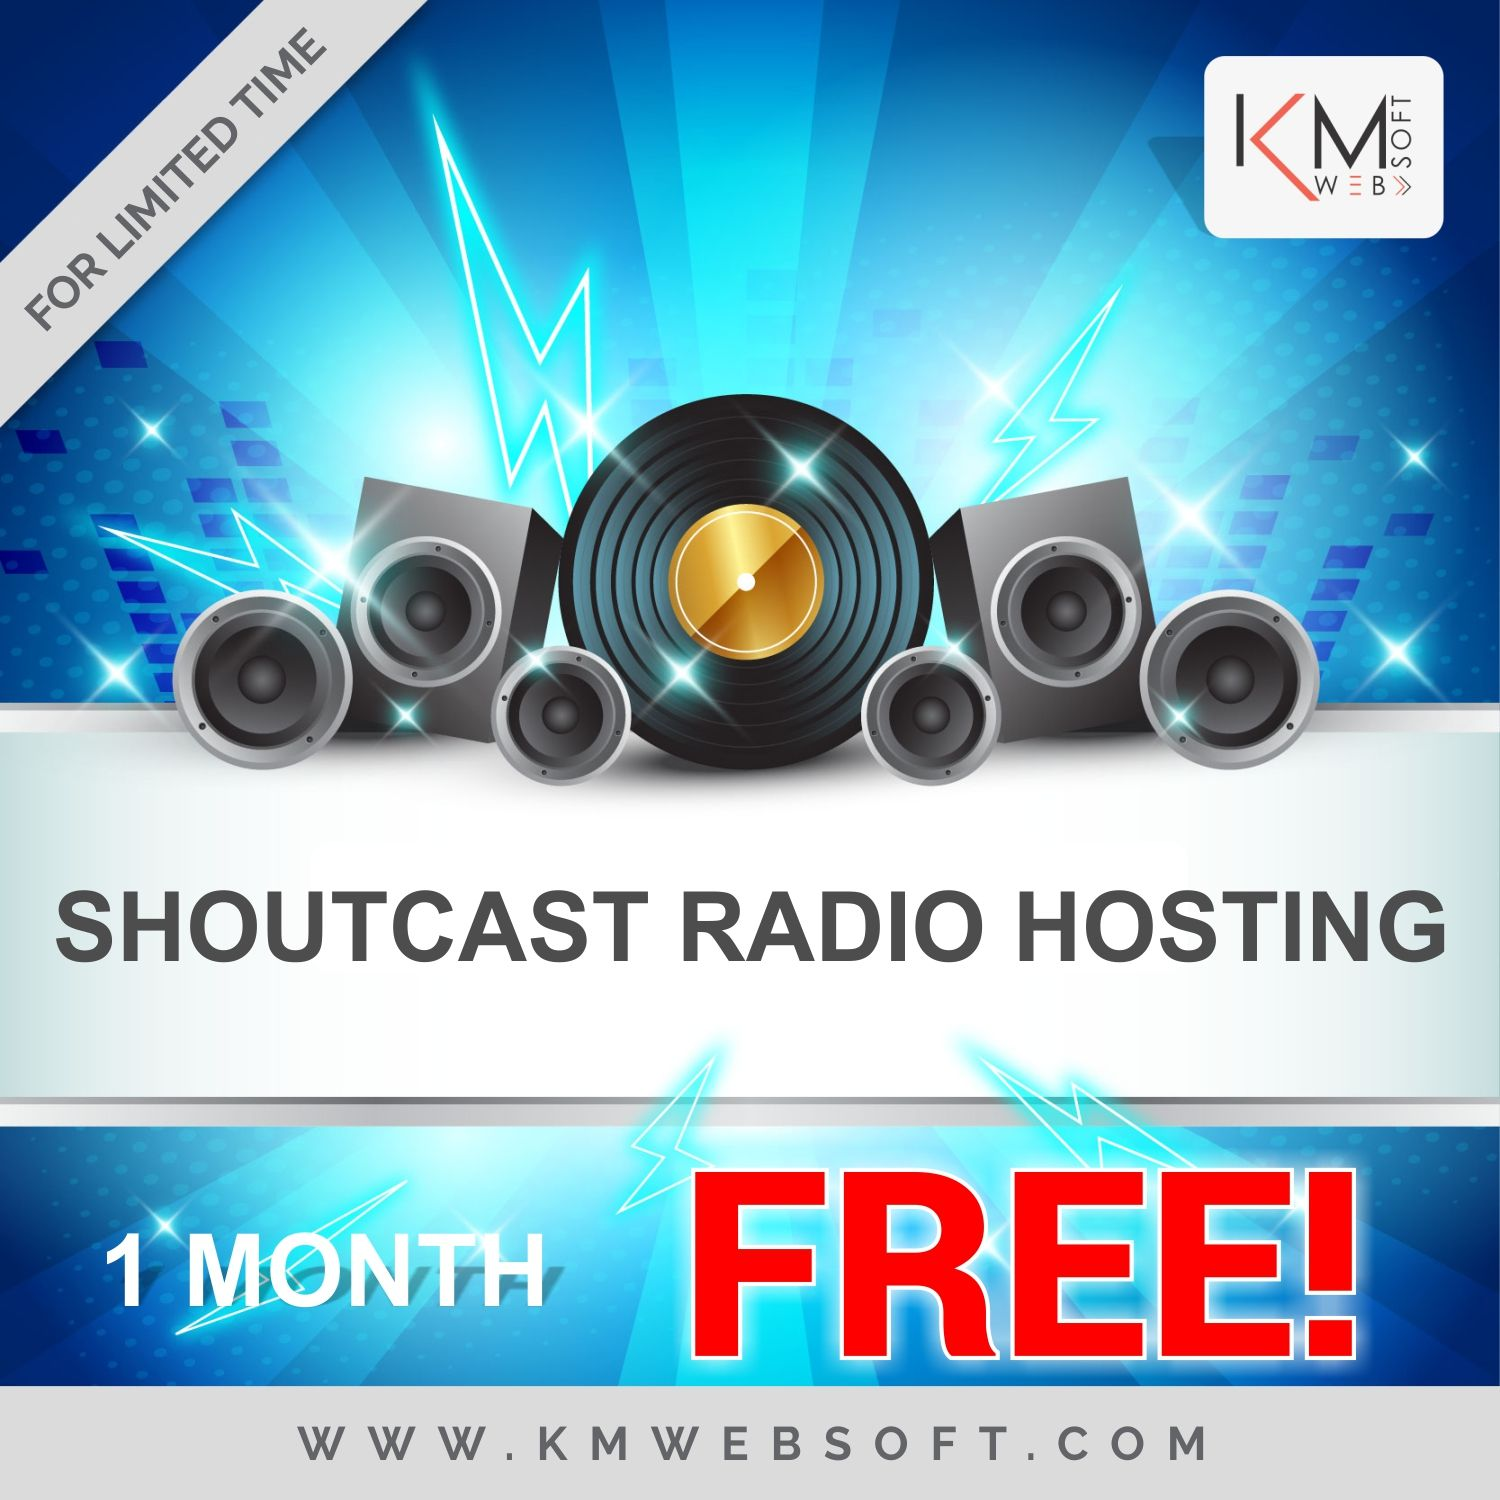 Shoutcast / Icecast with Unlimited Autodj, Disc Space, Start